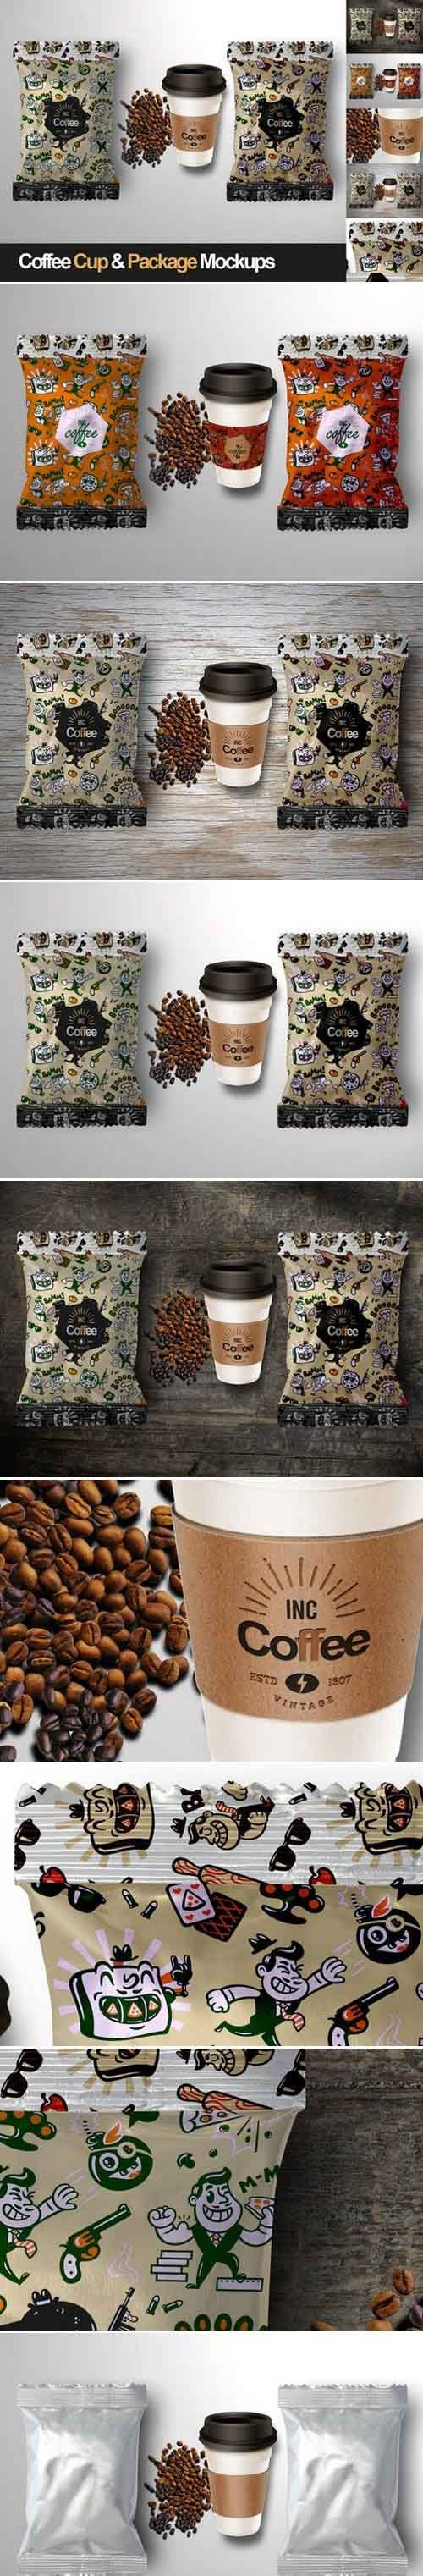 CM - Coffee Package Mockup